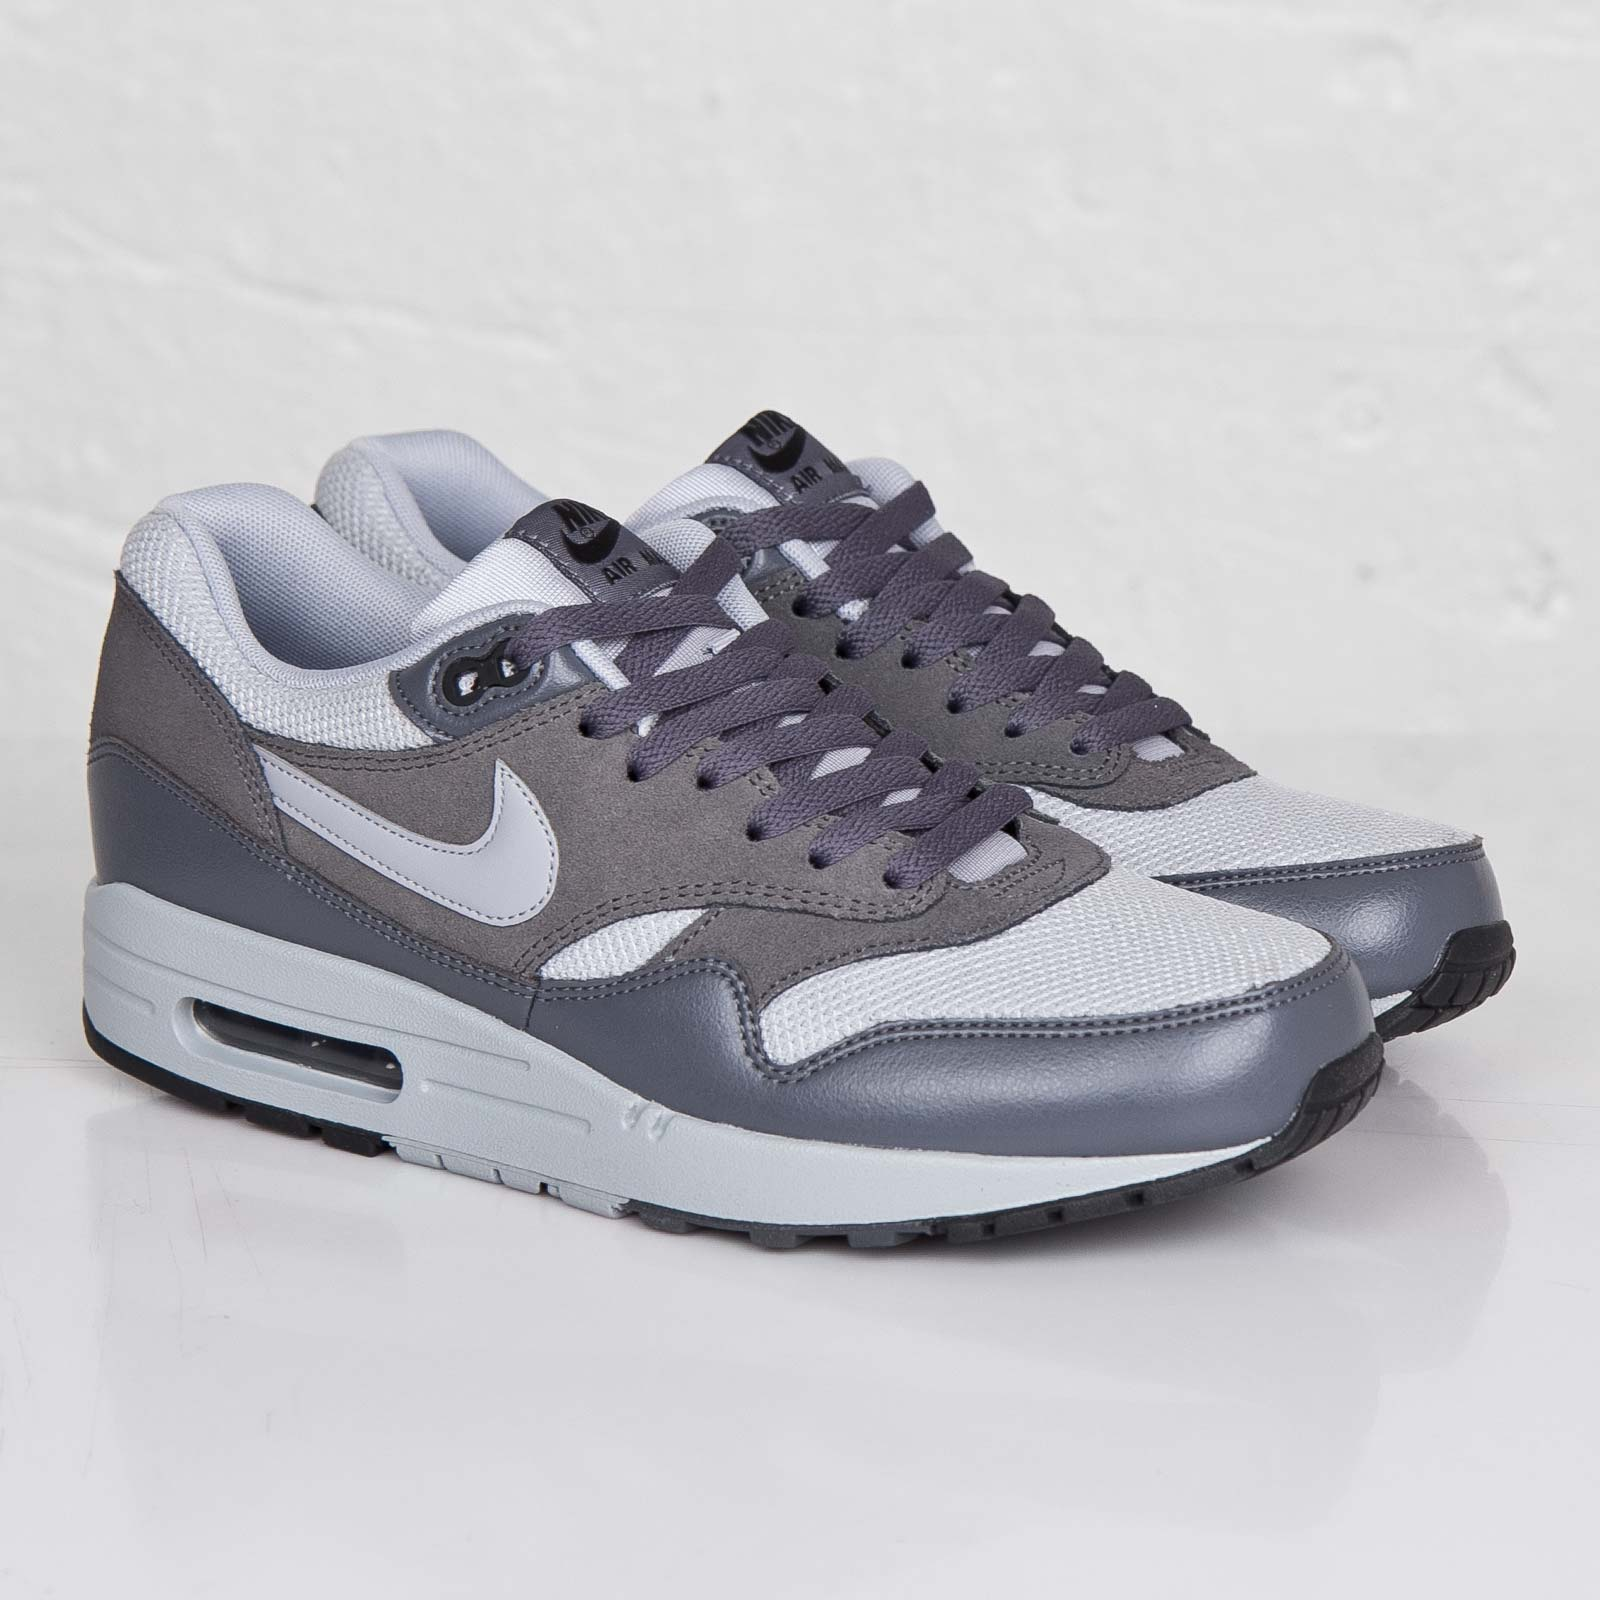 innovative design 9ce81 0df7d Nike Air Max 1 Essential